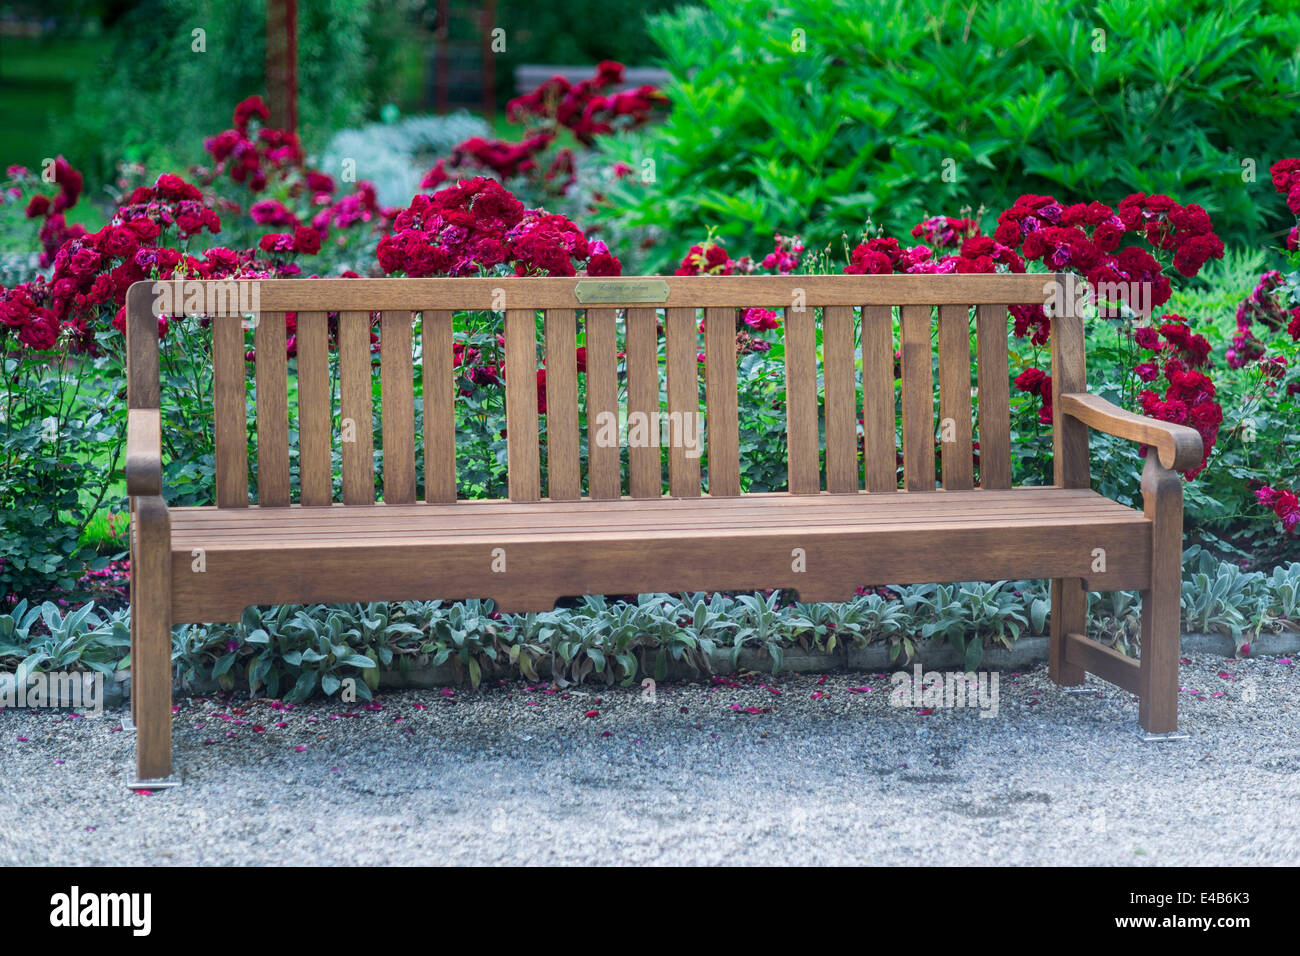 Park bench in blooming roses - Stock Image